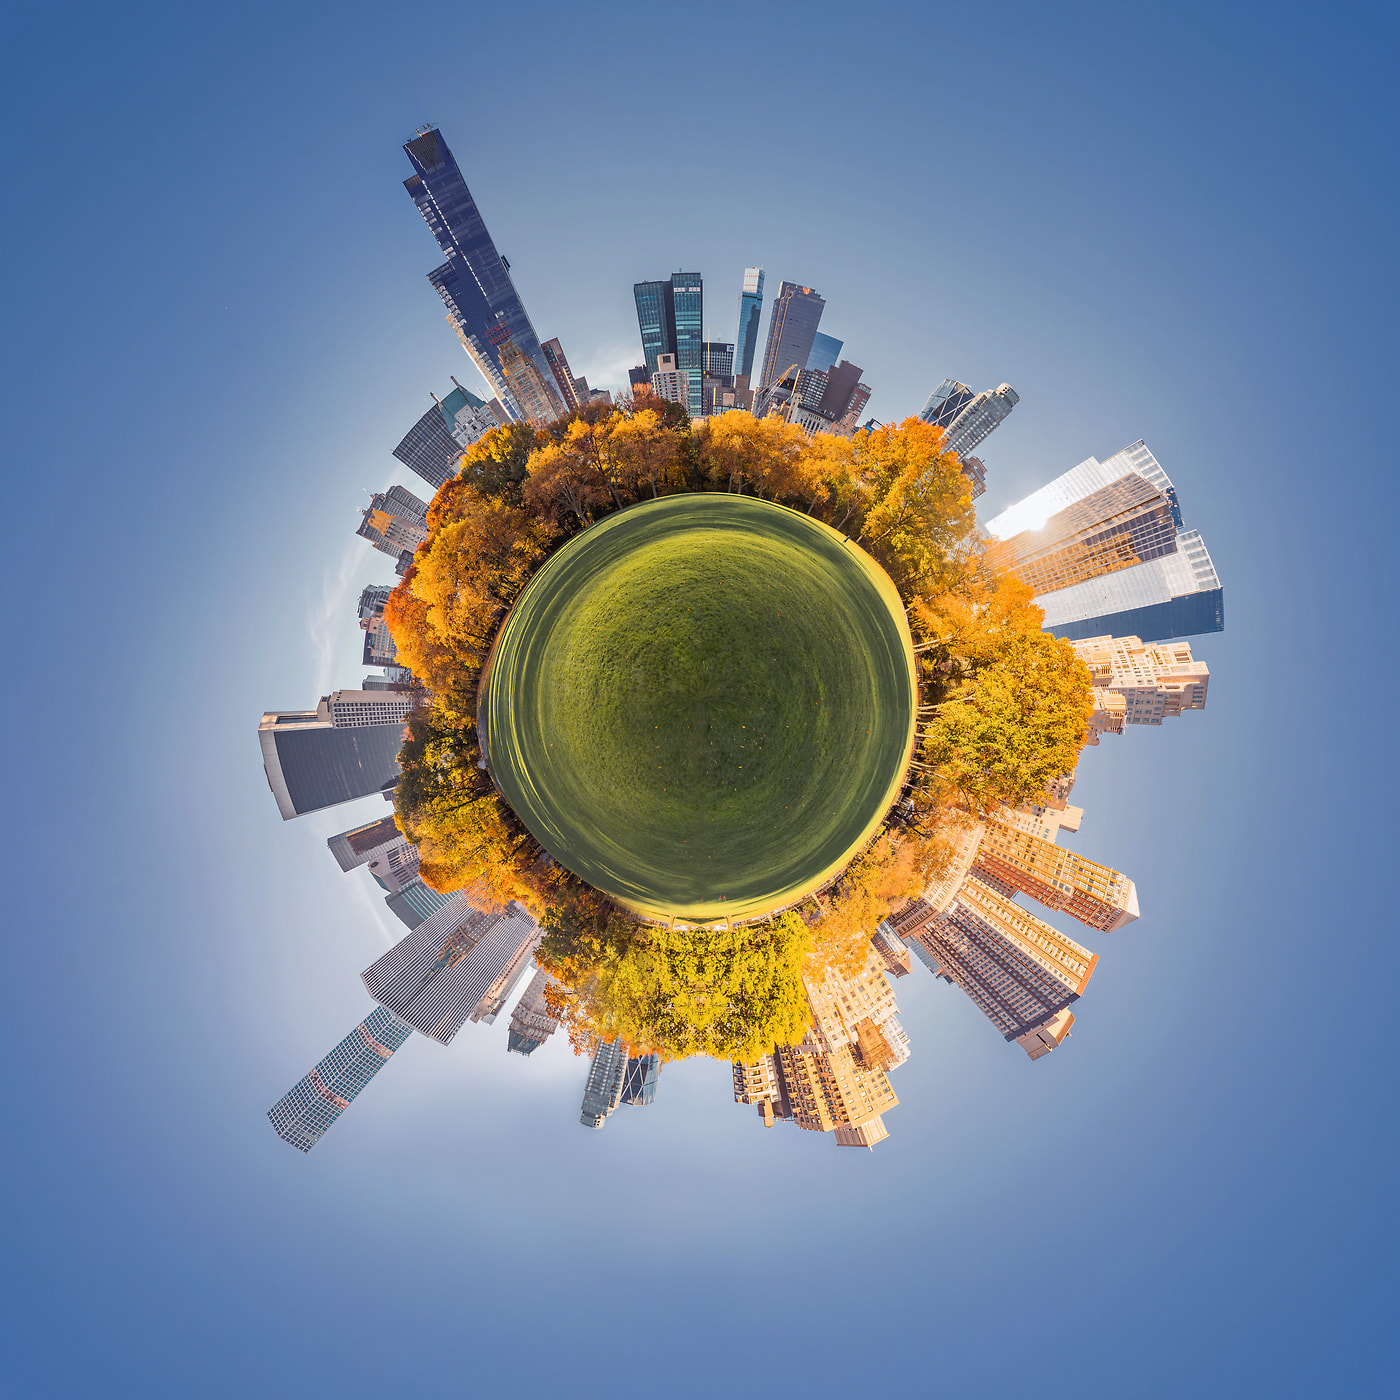 236 megapixels! A very high resolution abstract spherical planet VAST photo of autumn in Central Park, New York City; cityscape artwork created by Dan Piech